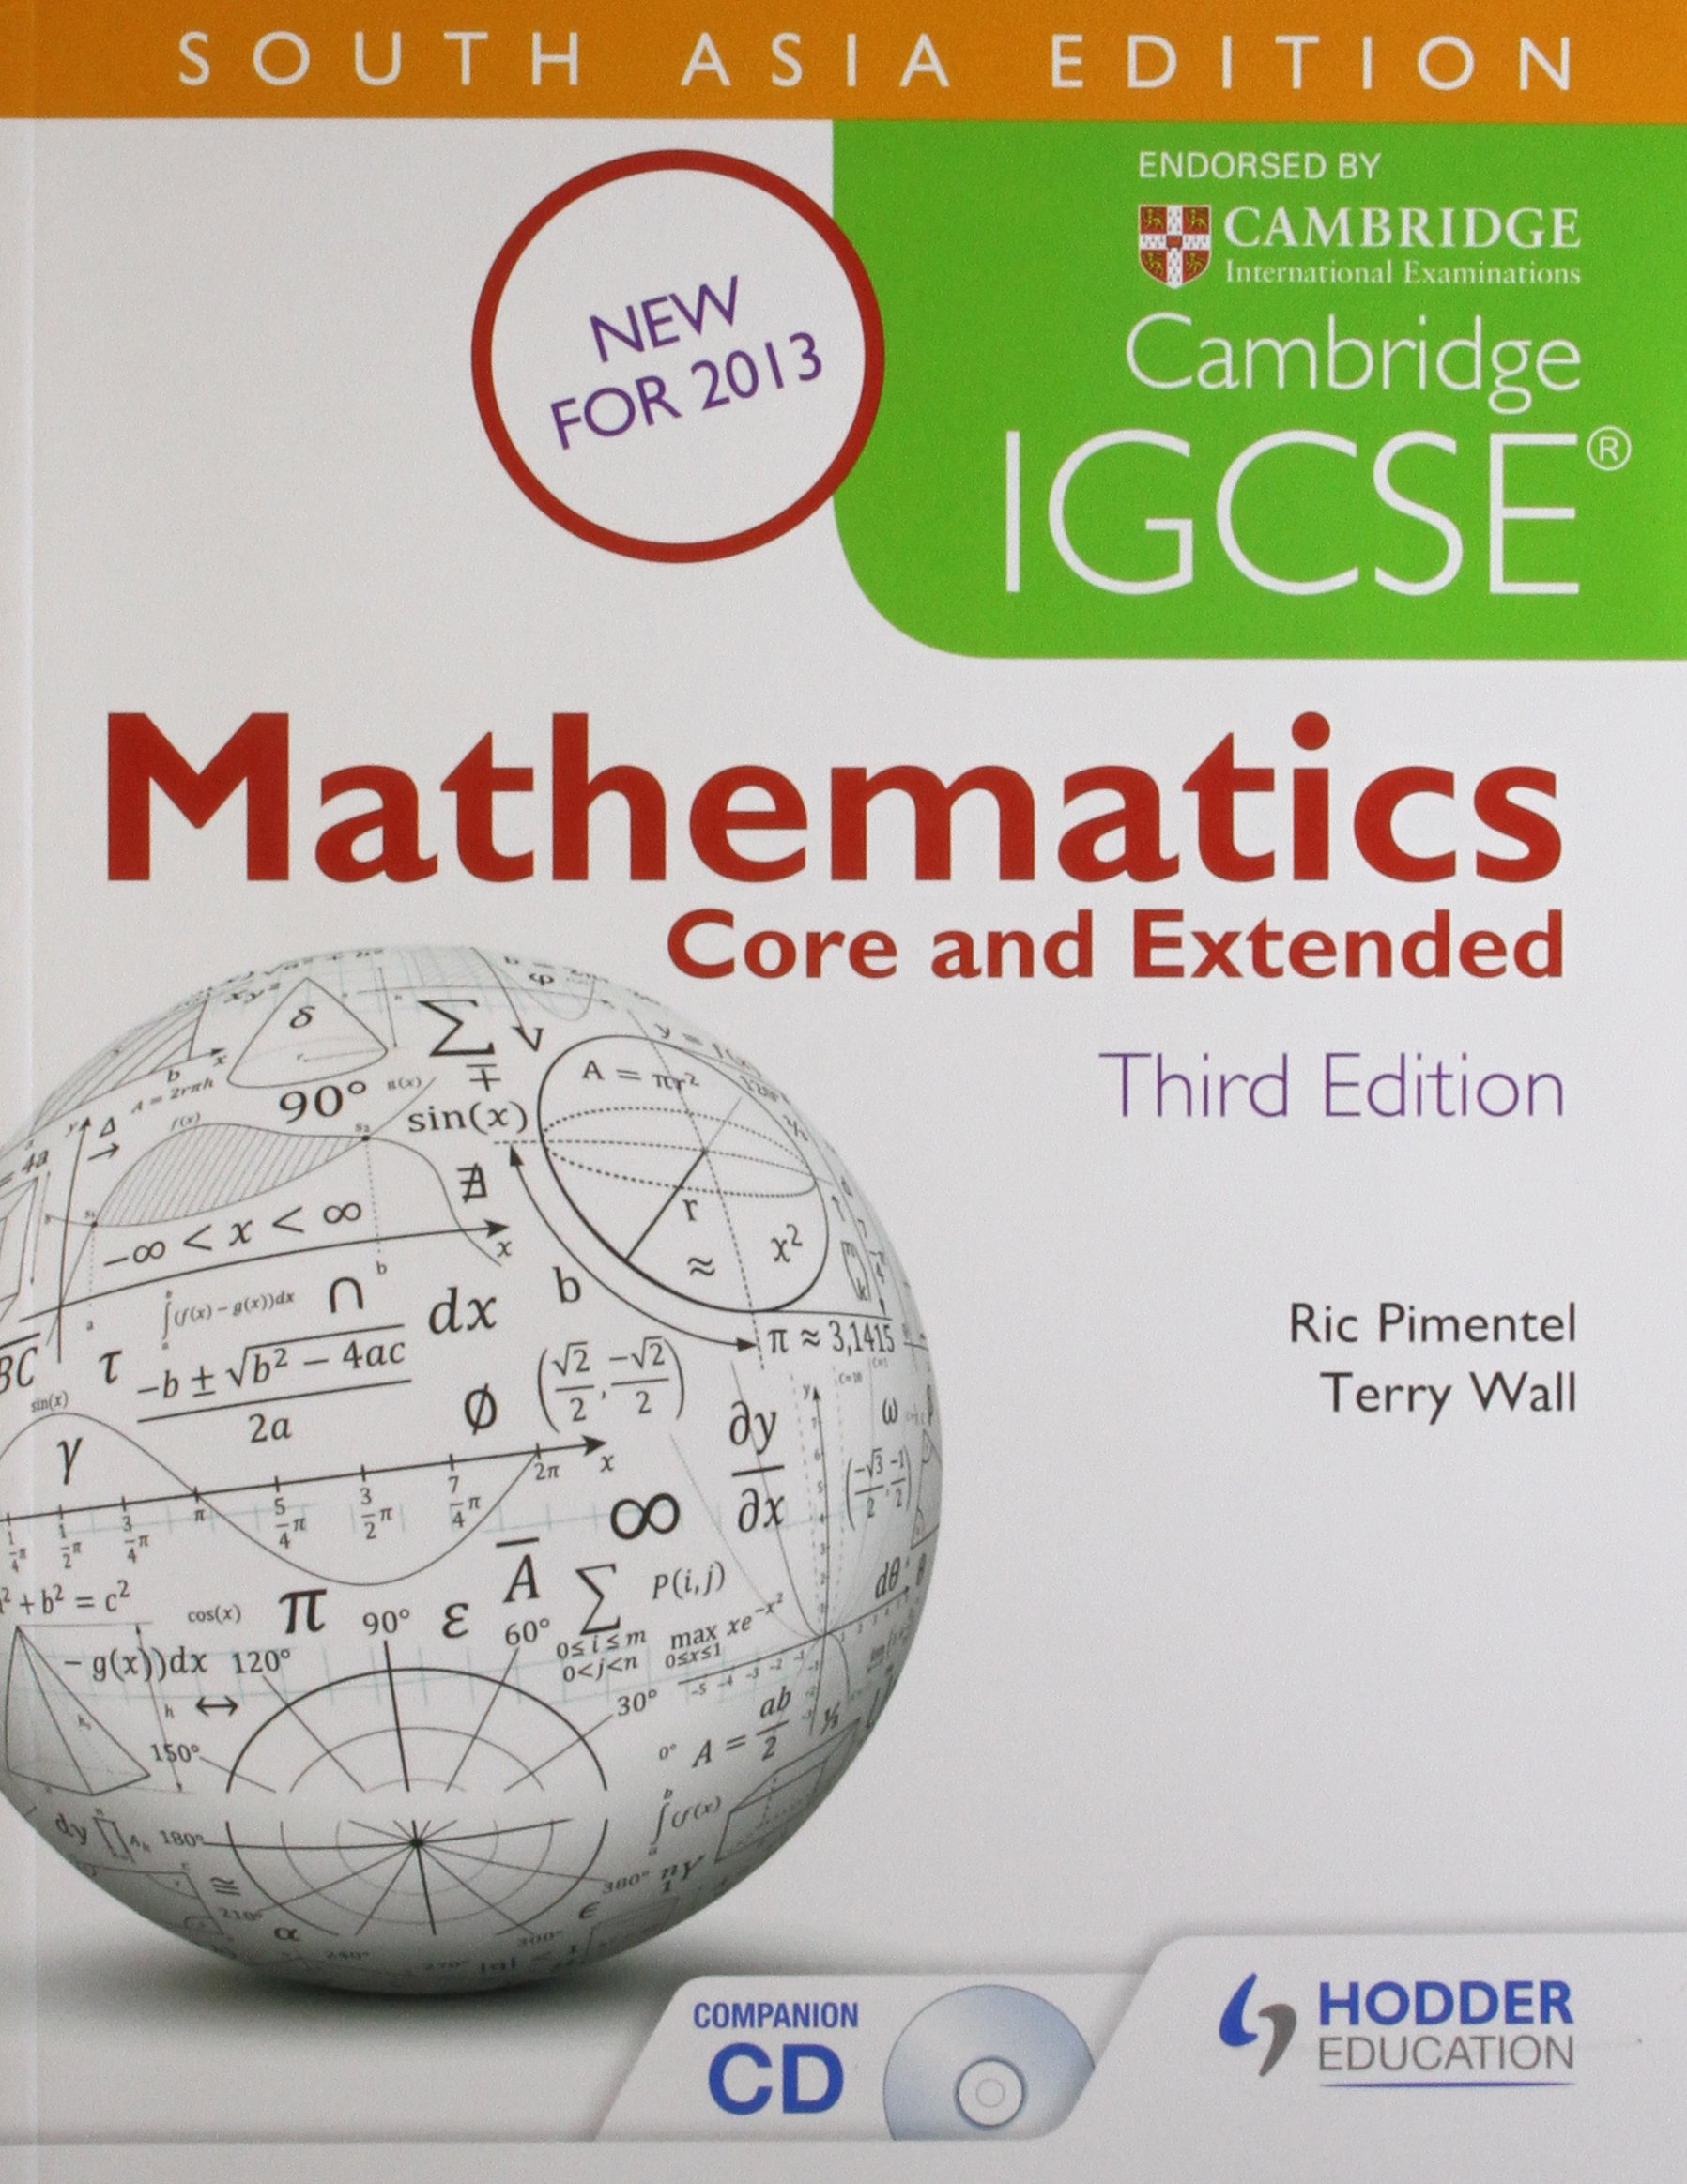 CAMBRIDGE IGCSE MATHEMATICS CORE AND EXTENDED COURSEBOOK PDF DOWNLOAD